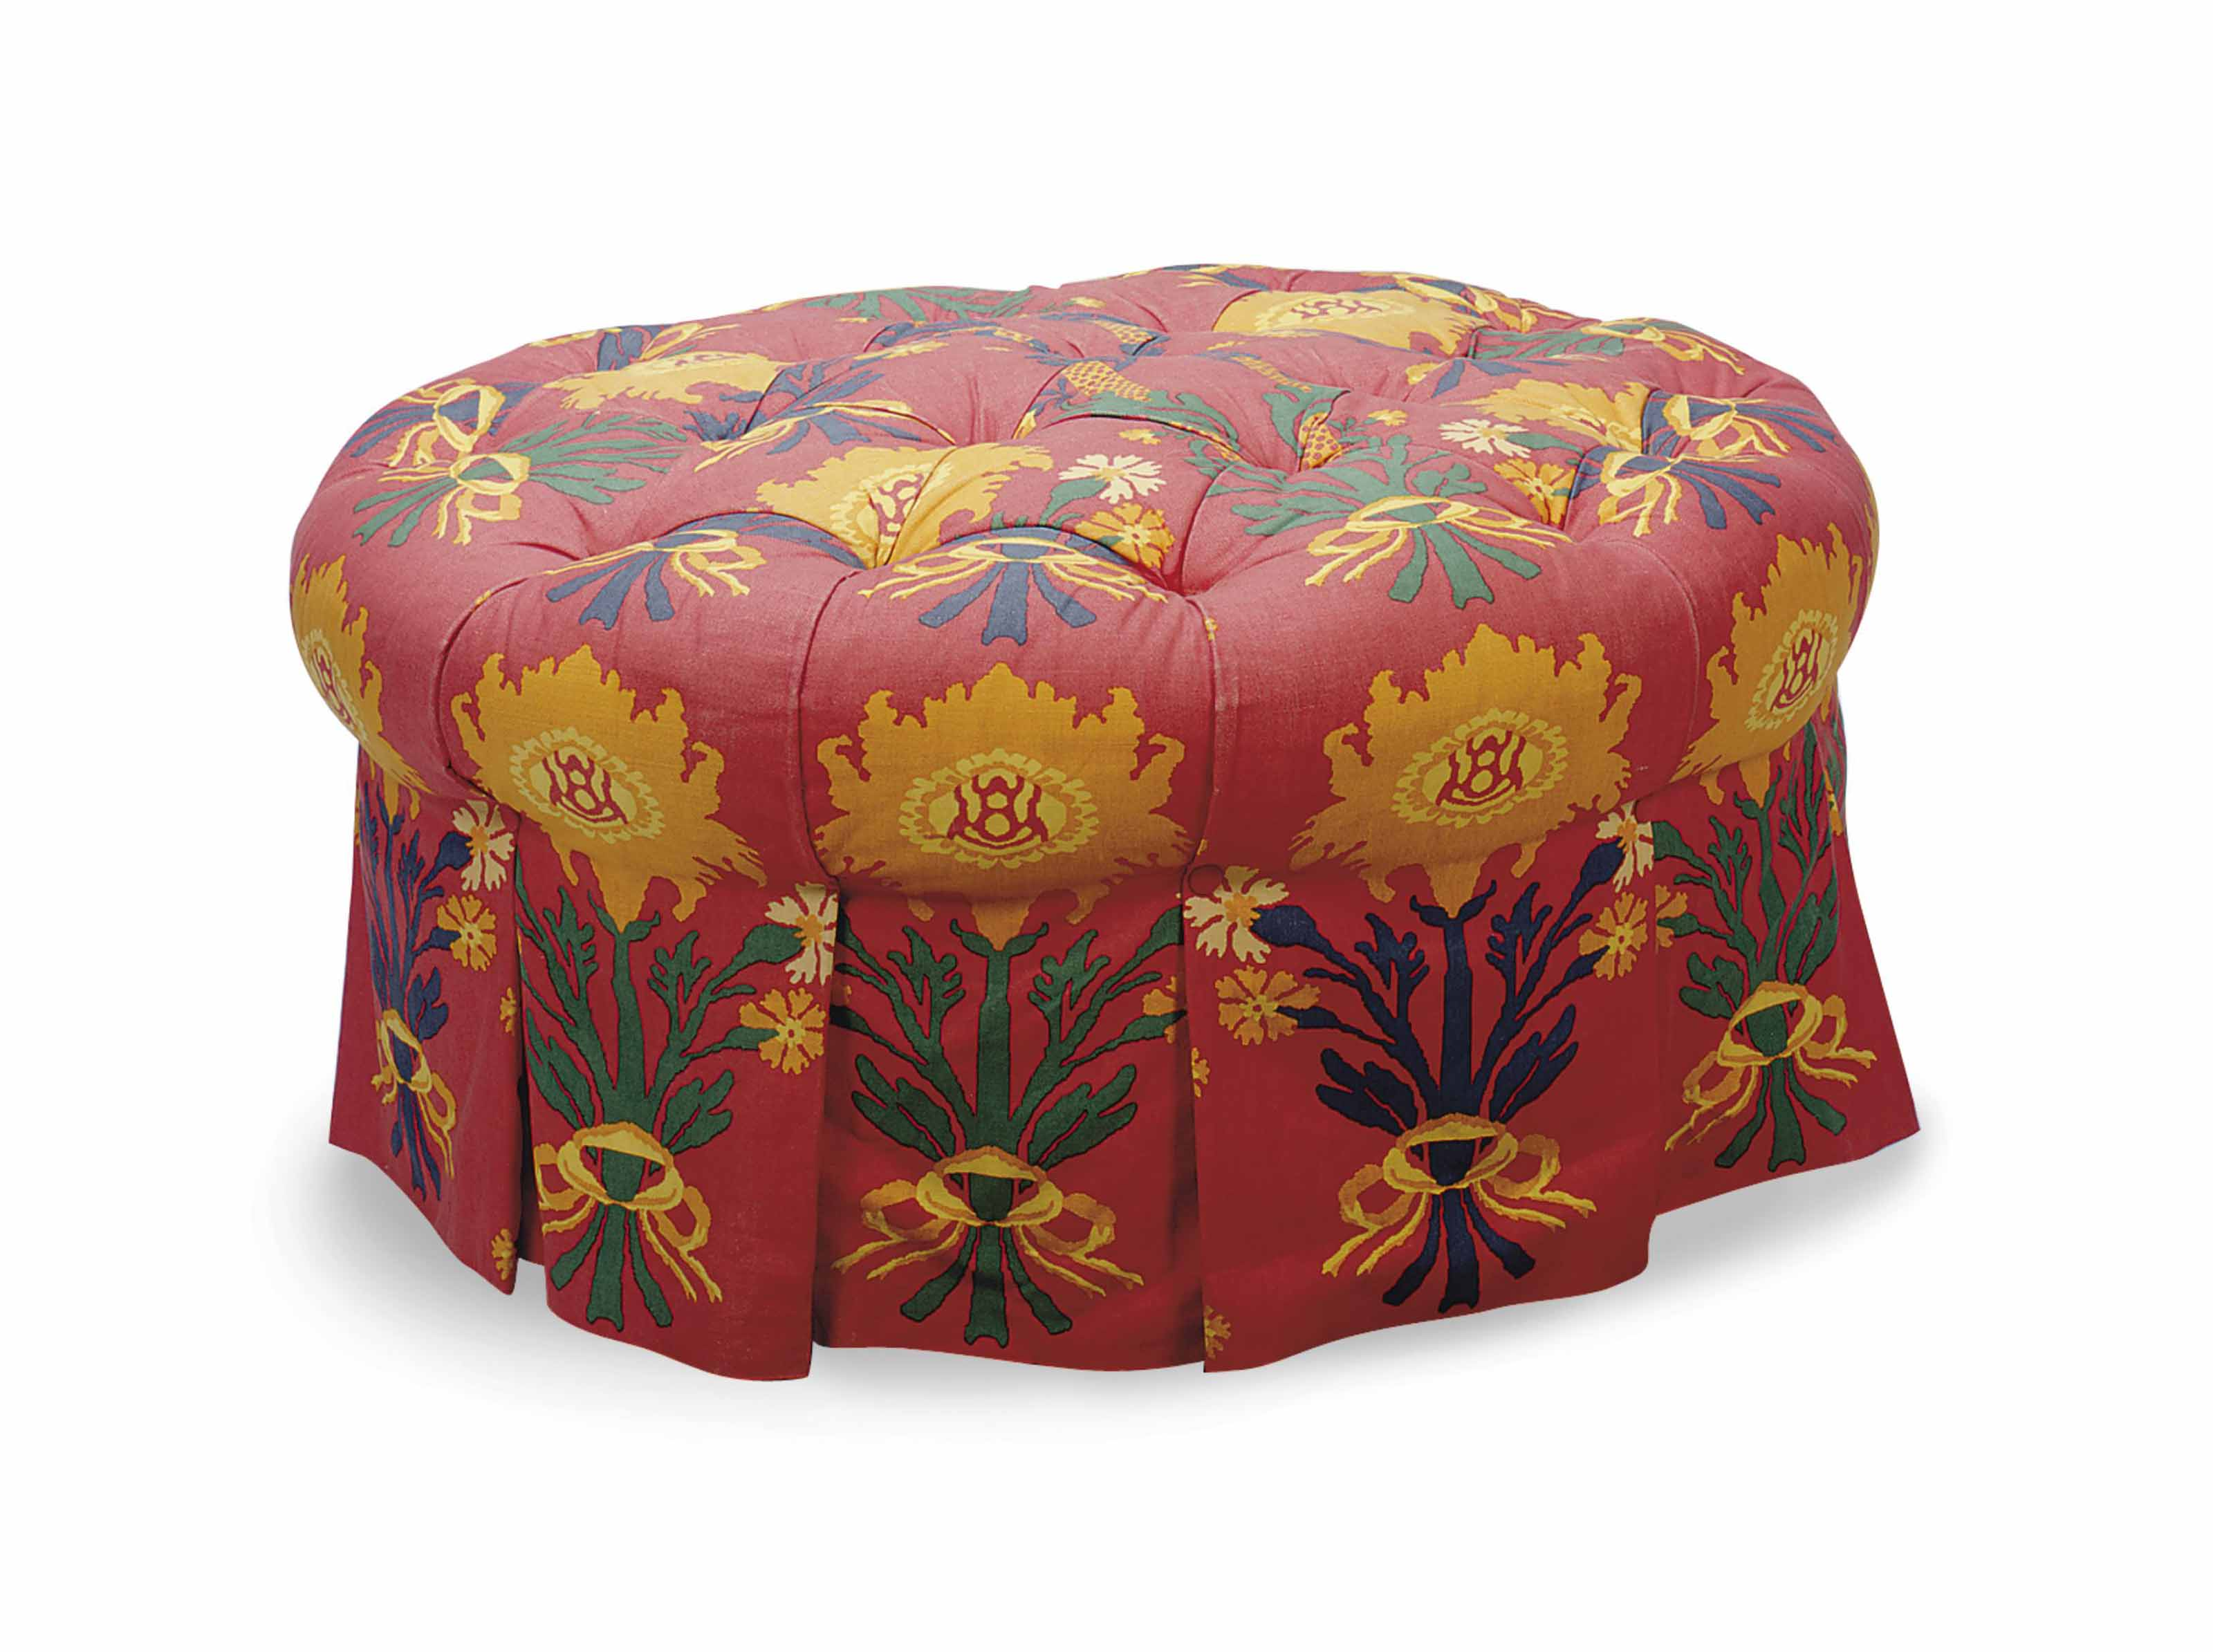 Pleasing A Red Ground Linen Upholstered Circular Ottoman Late 20Th Pabps2019 Chair Design Images Pabps2019Com